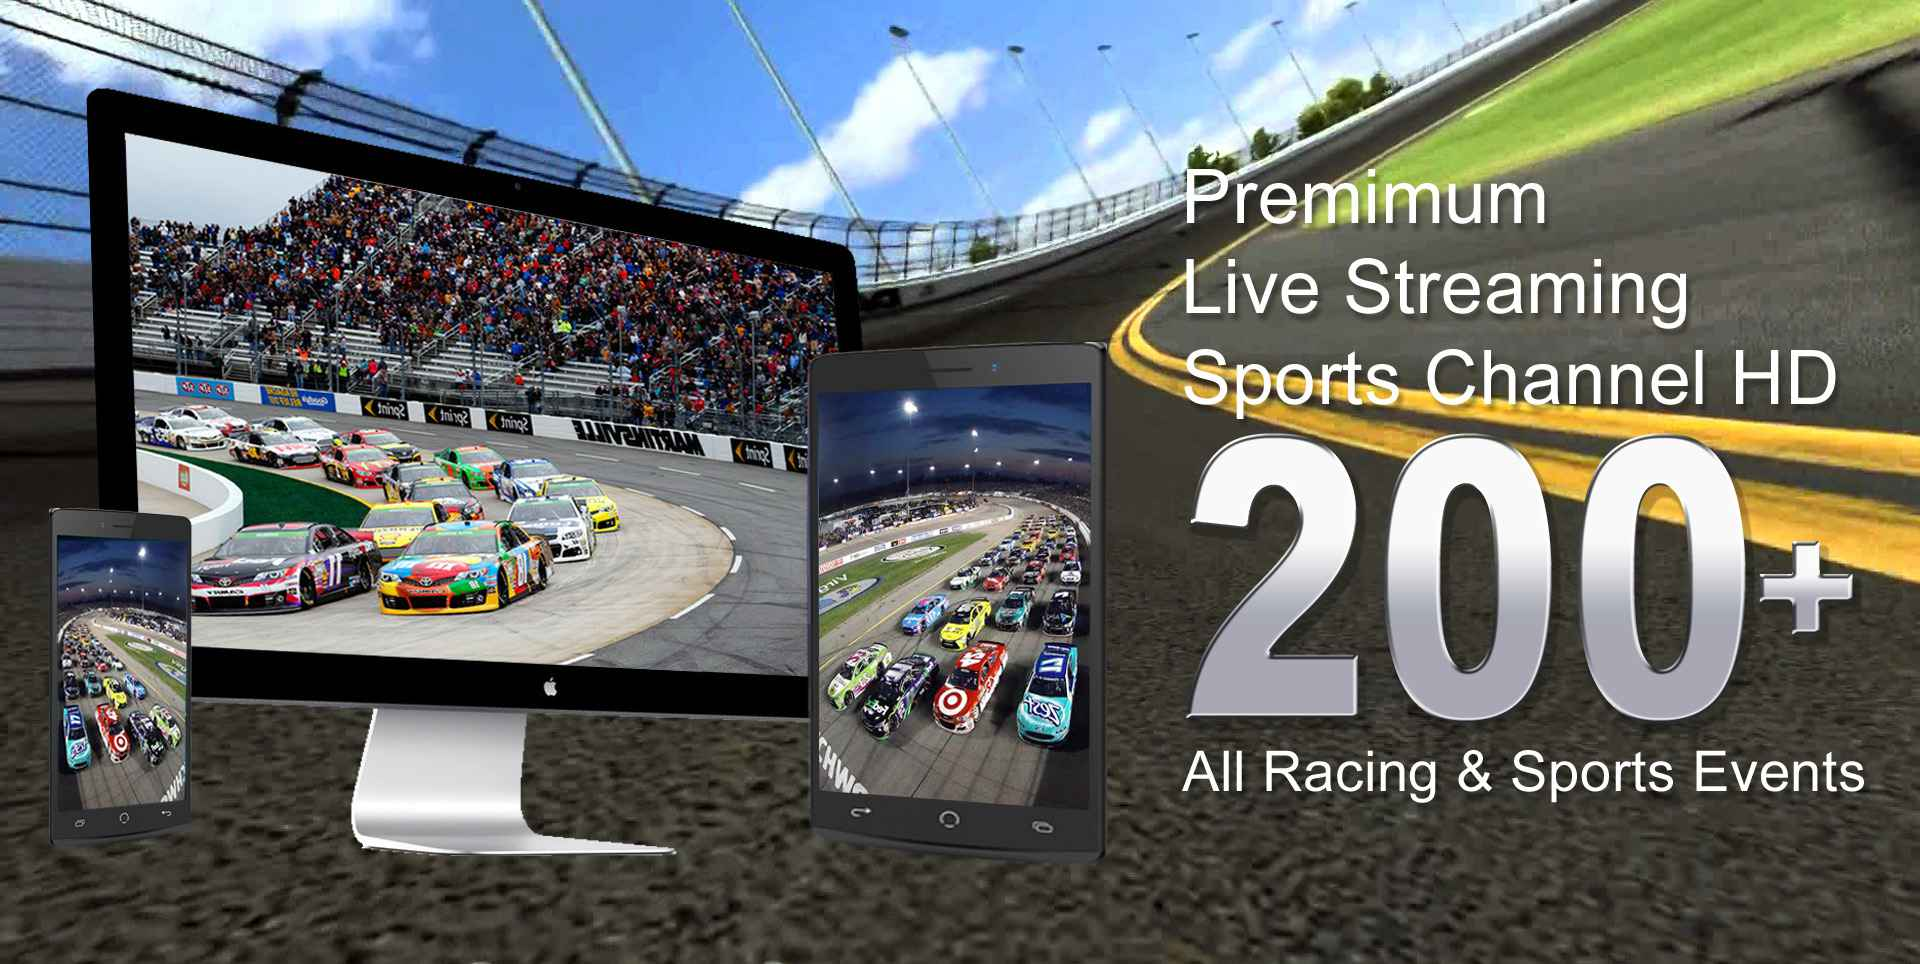 jeff%20kyle%20400%20at%20the%20brickyard 2015 NASCAR Jeff Kyle 400 at the Brickyard Live Stream